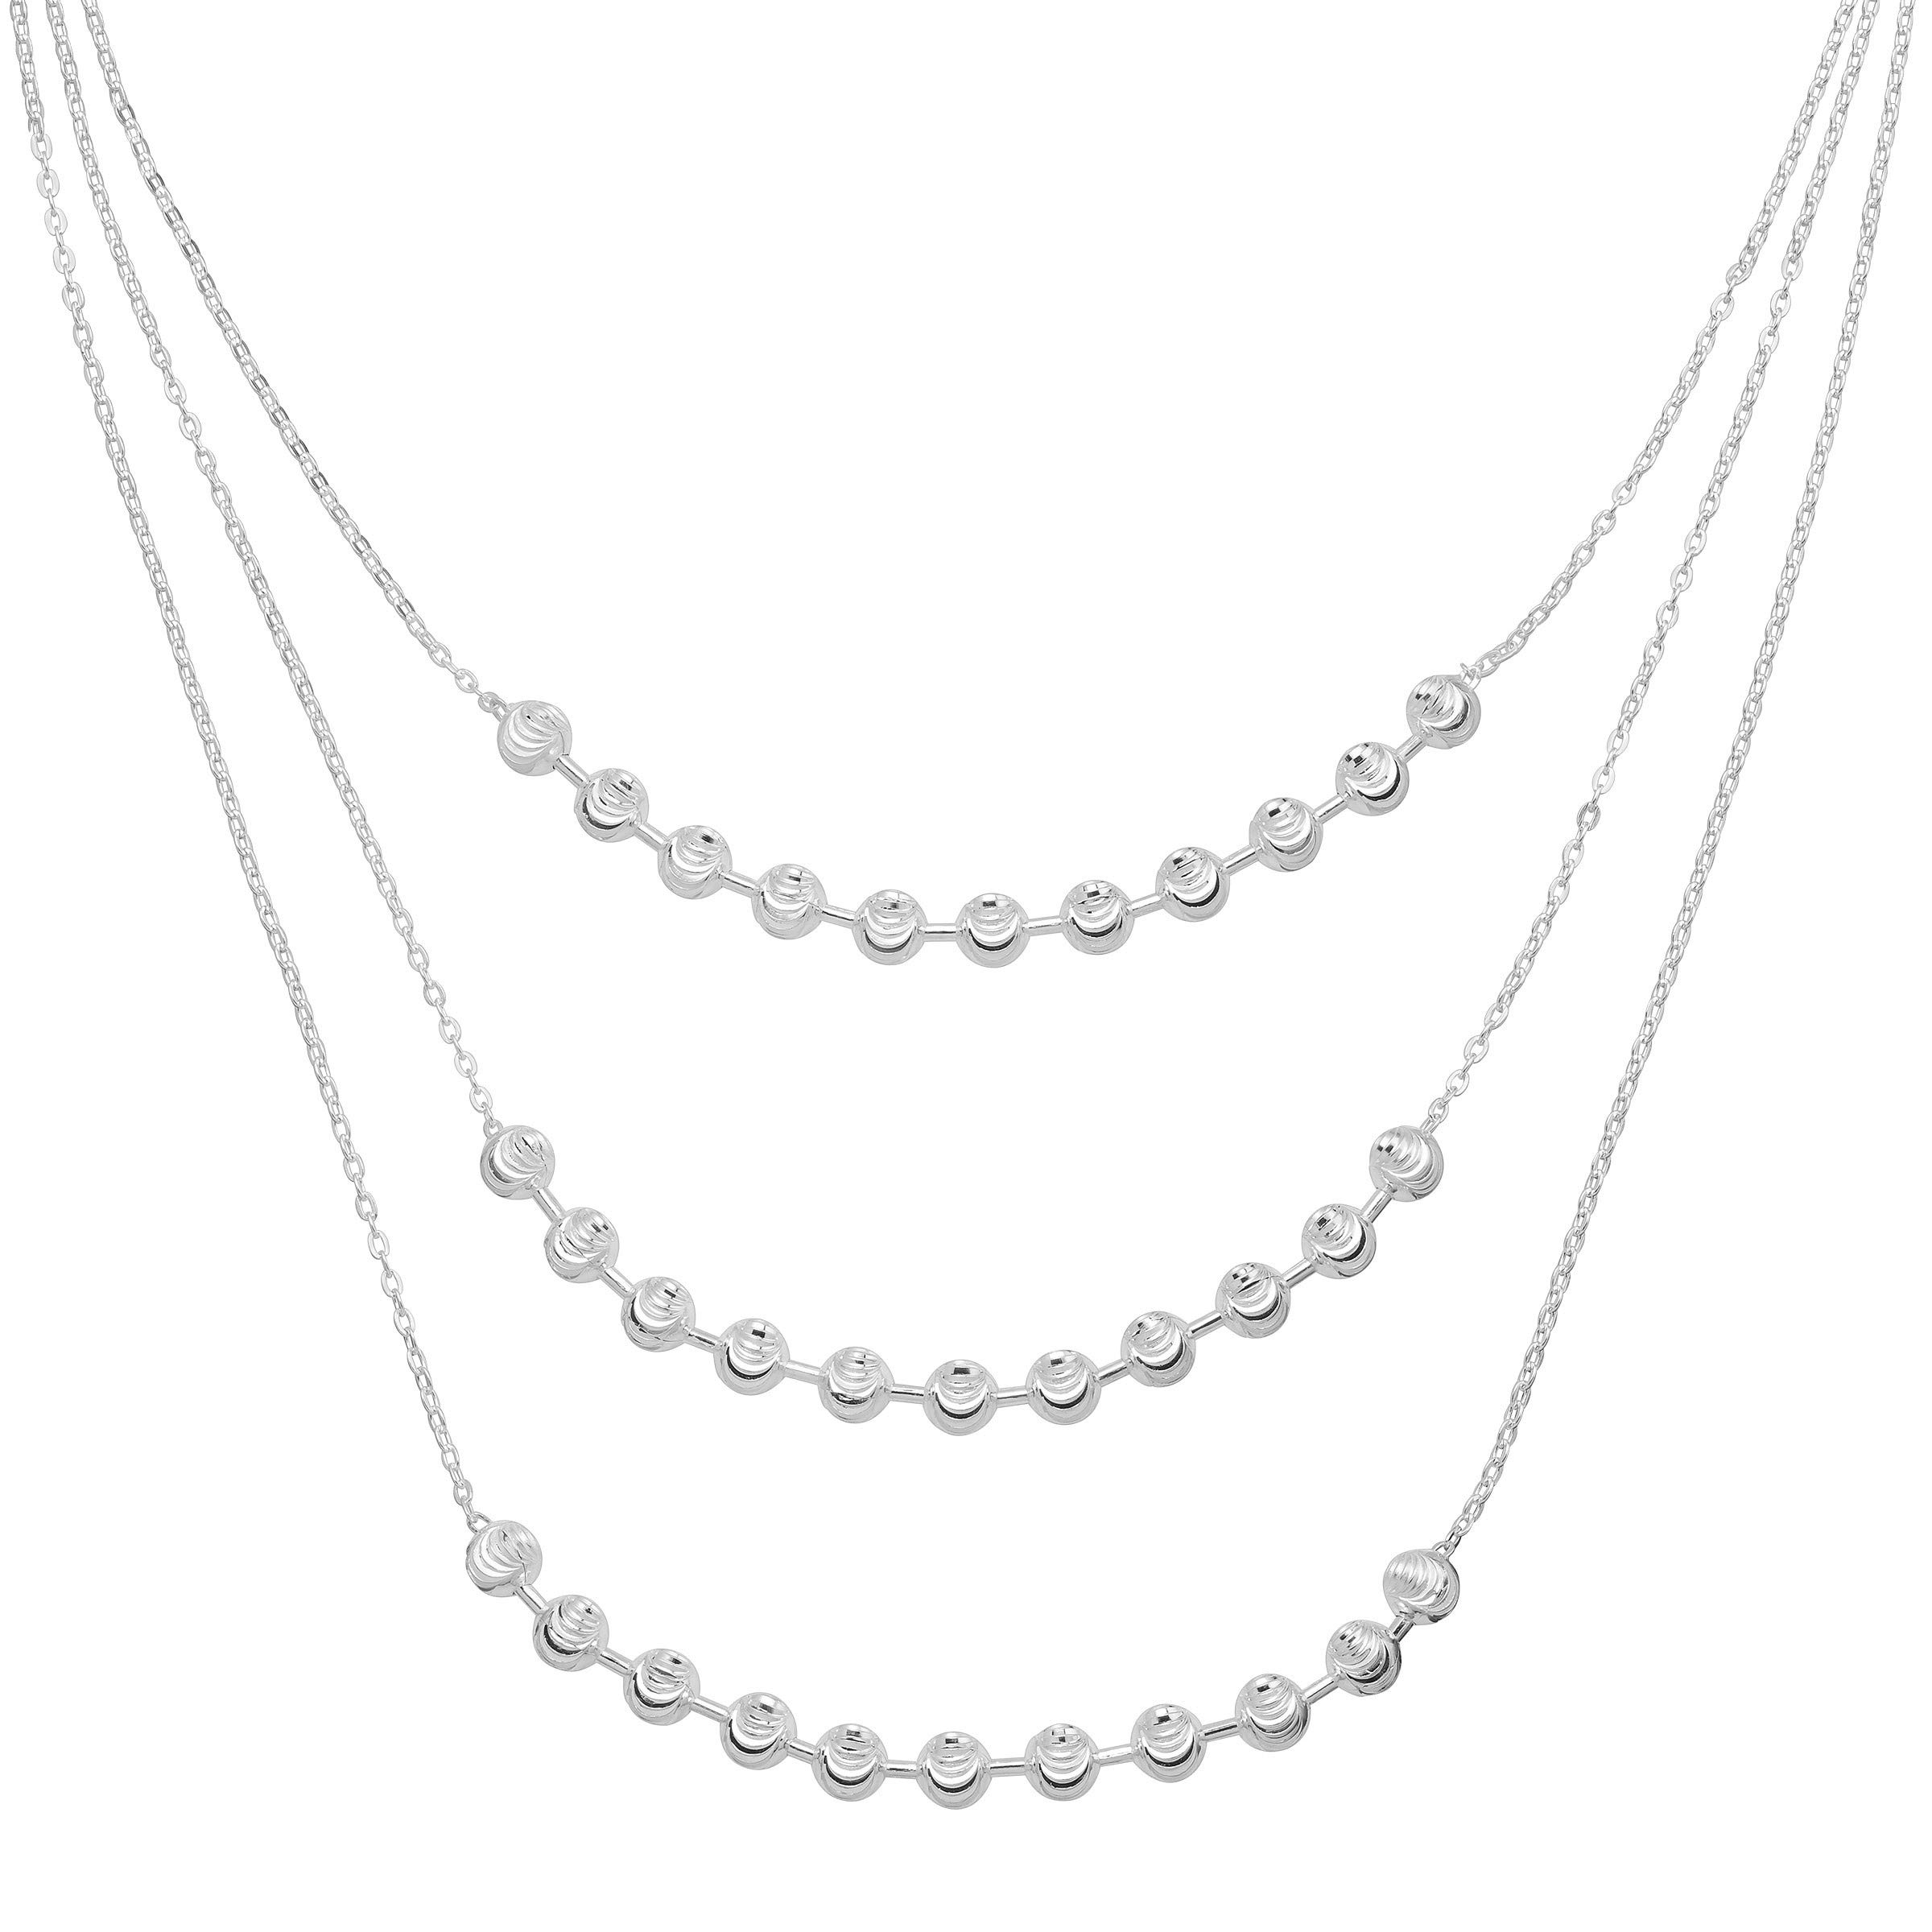 Silpada 'Sabina Sage' Beaded Three-Layer Necklace in Sterling Silver